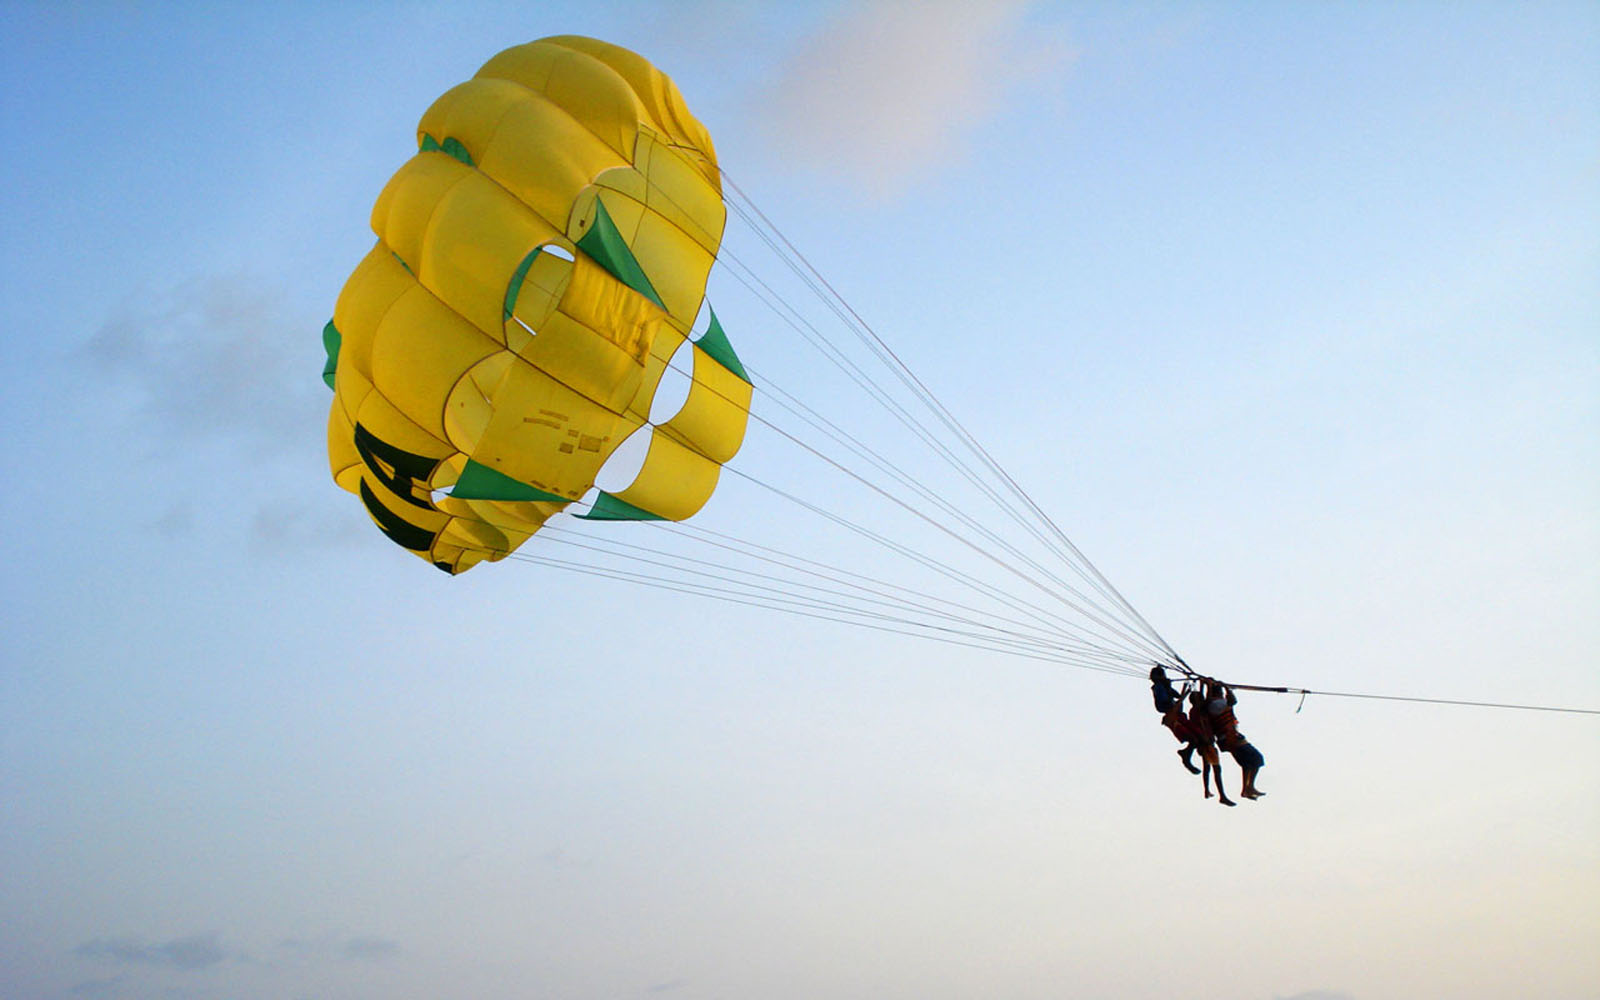 Free 3d Moving Wallpapers For Laptop Wallpapers Parachuting Wallpapers